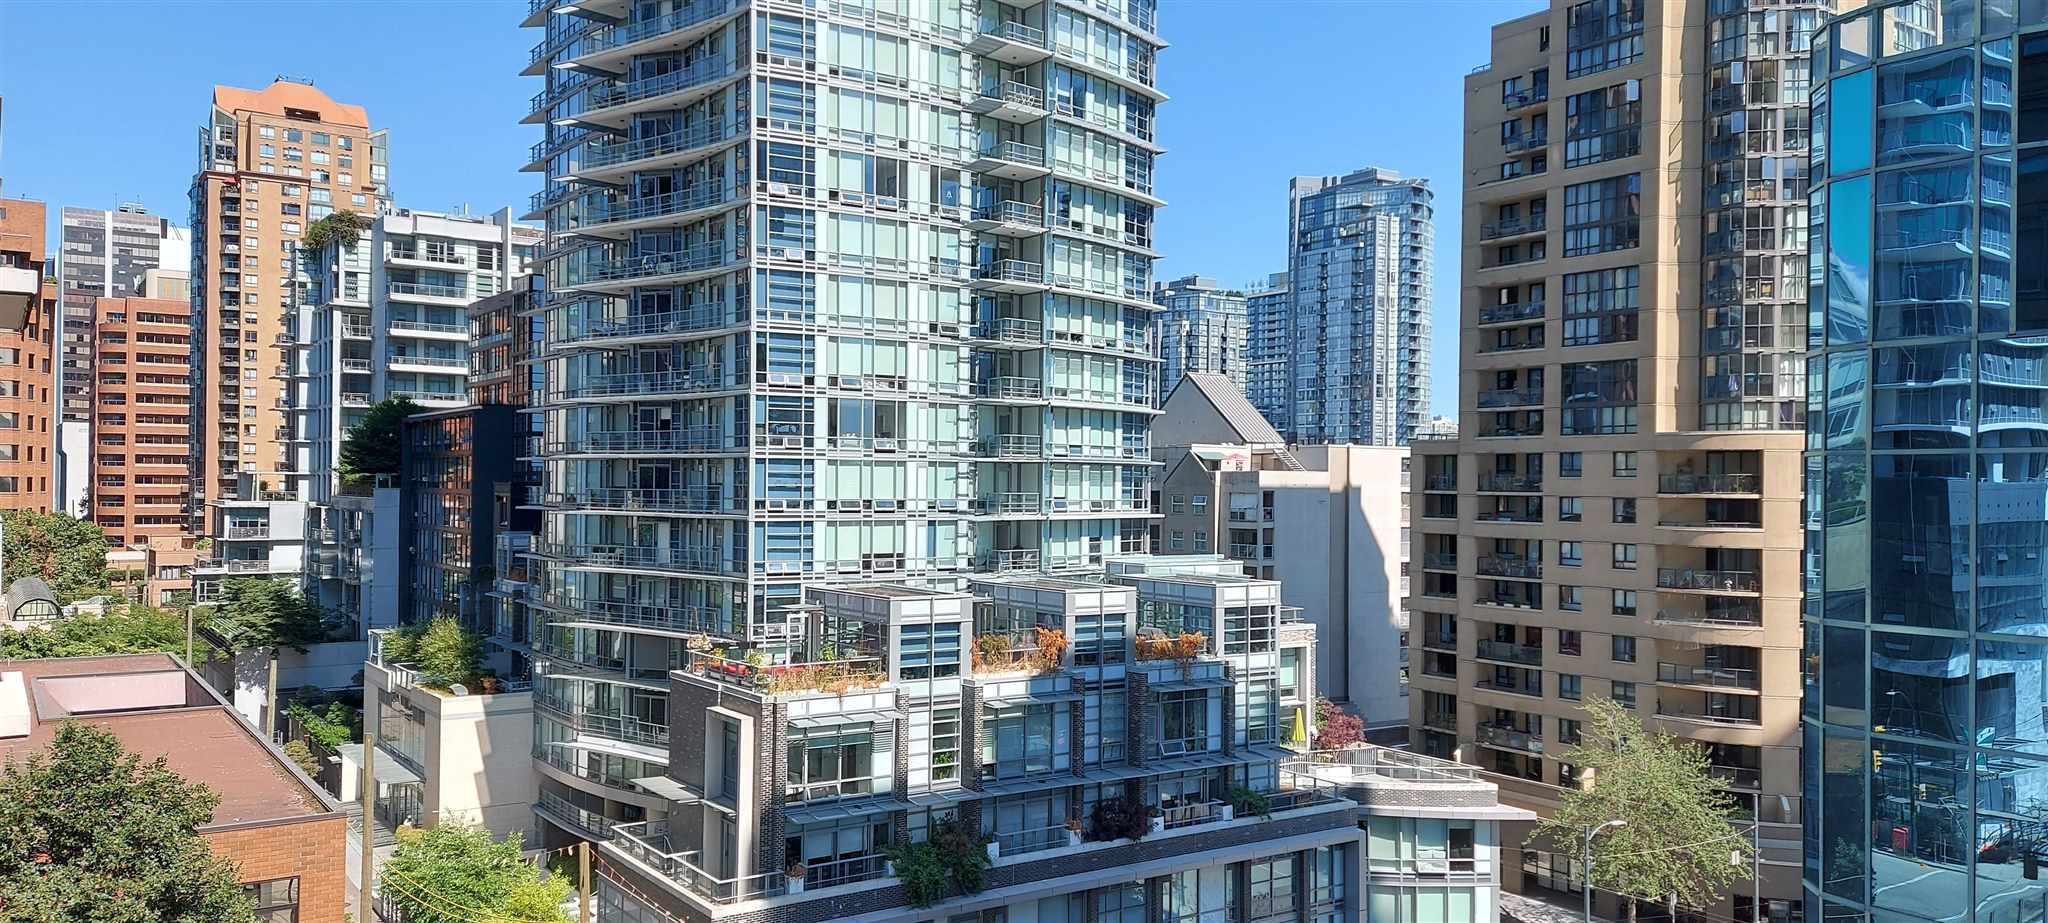 807 1308 HORNBY STREET - Downtown VW Apartment/Condo for sale, 2 Bedrooms (R2605361) - #1